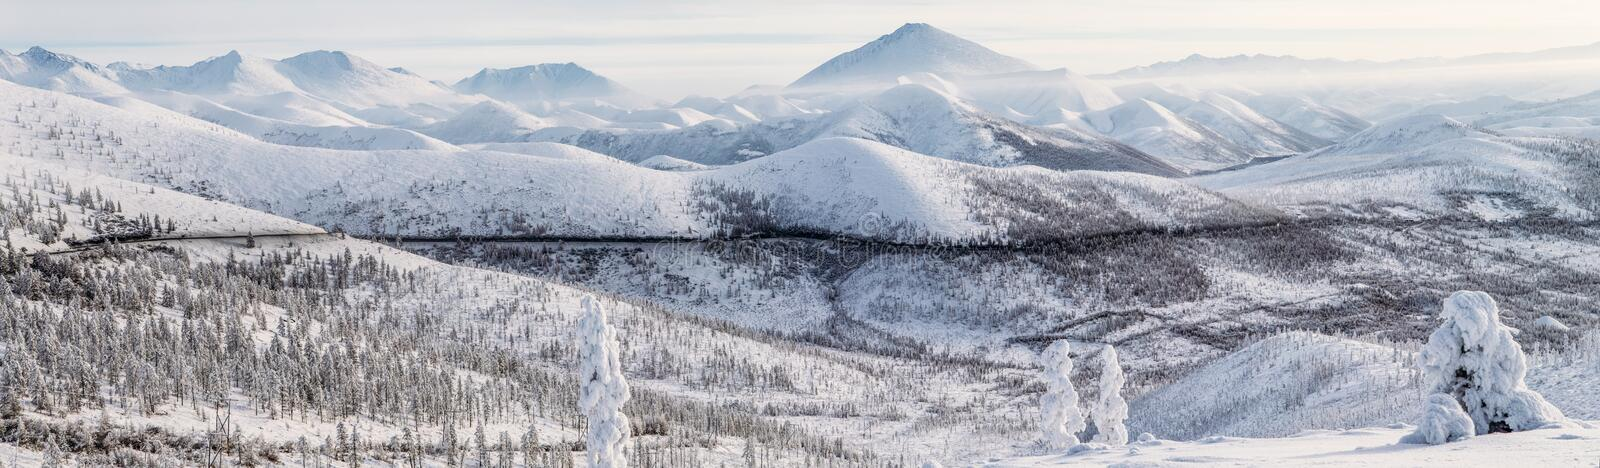 Beautiful snow covered winter road and trees in snow capped mountains, kolyma highway,. Russian federation stock photo